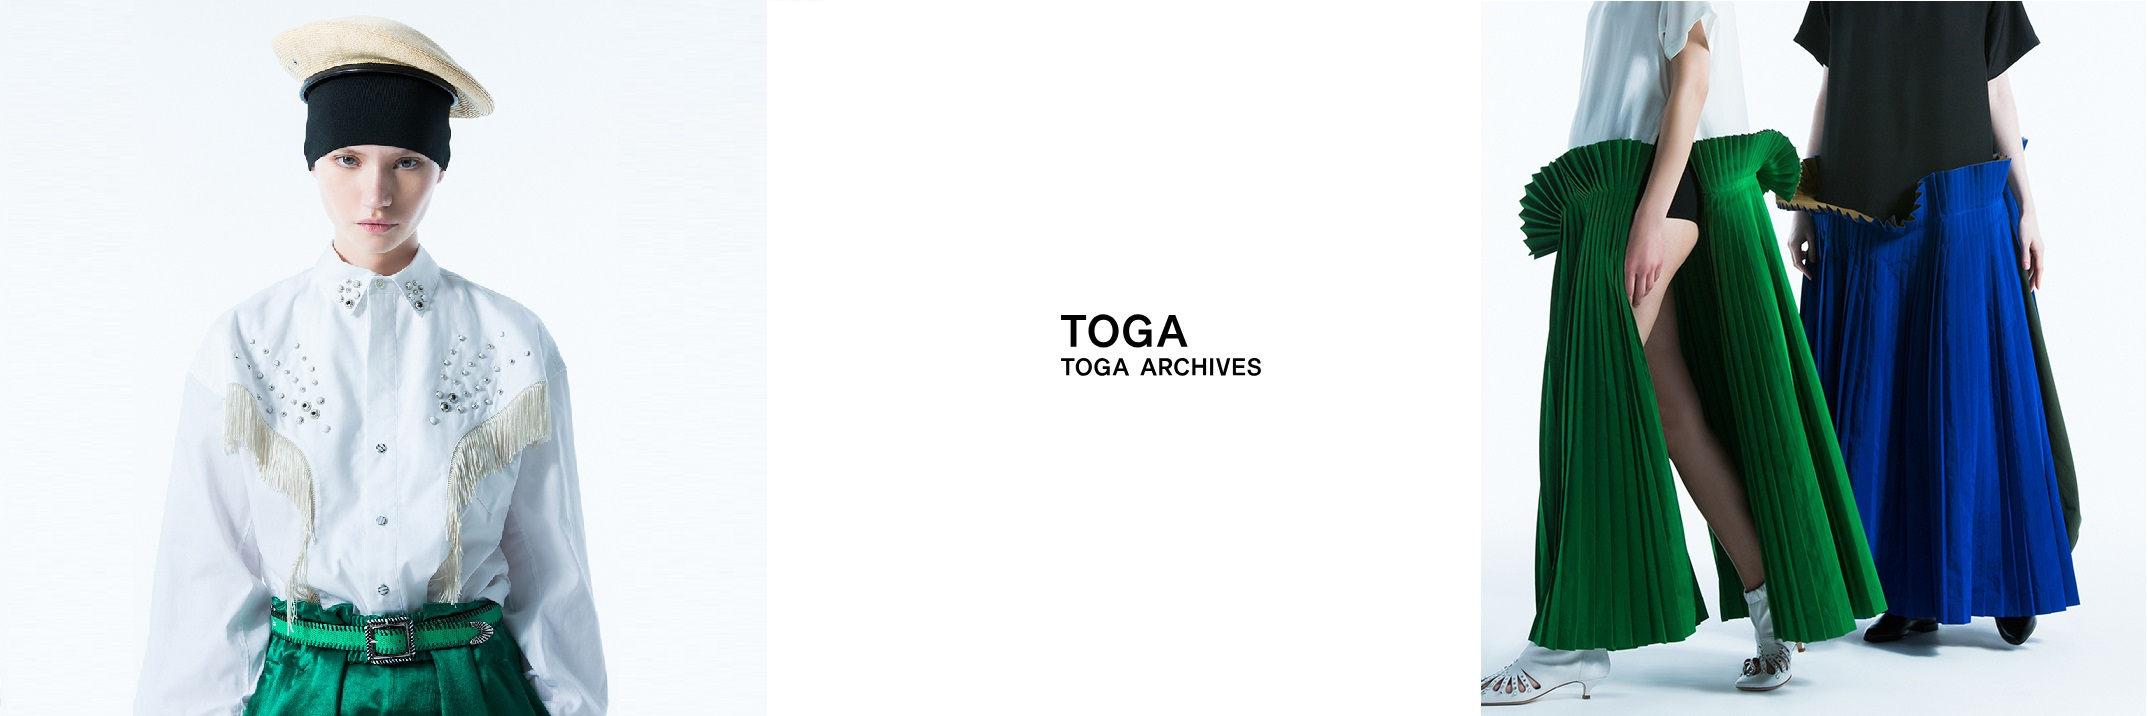 TOGA ARCHIVES